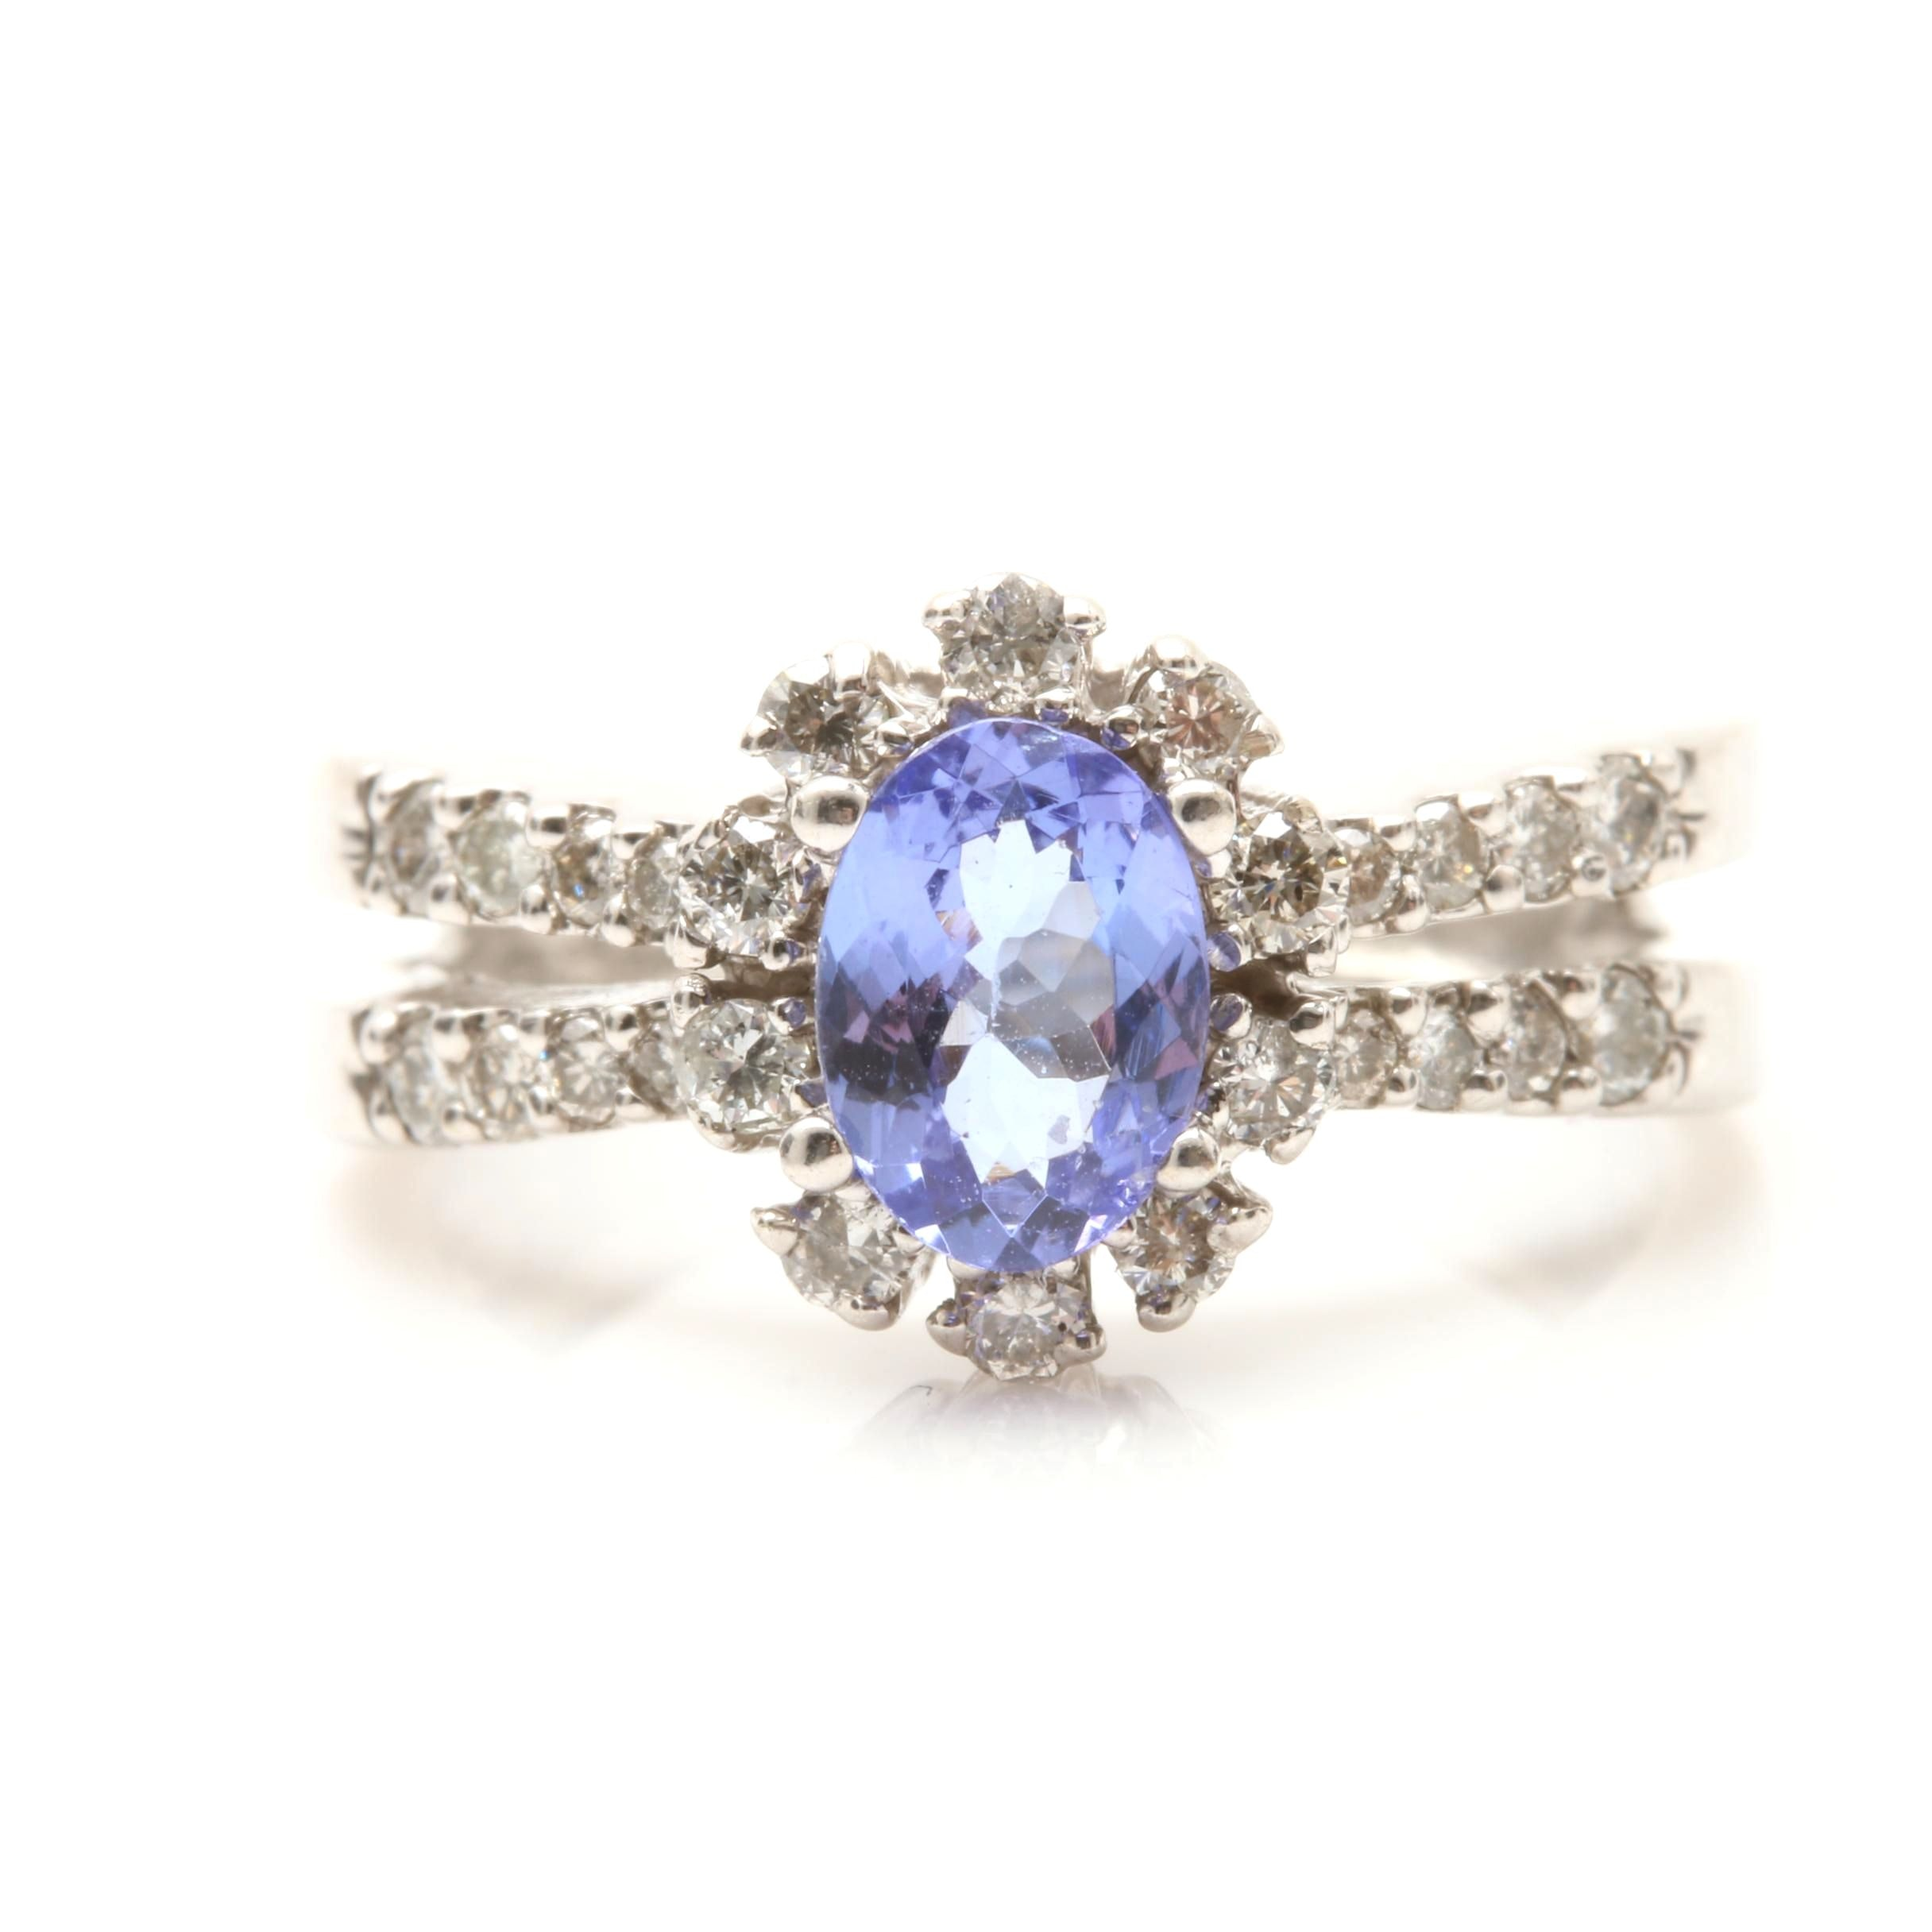 14K White Gold Tanzanite and Diamonds Ring